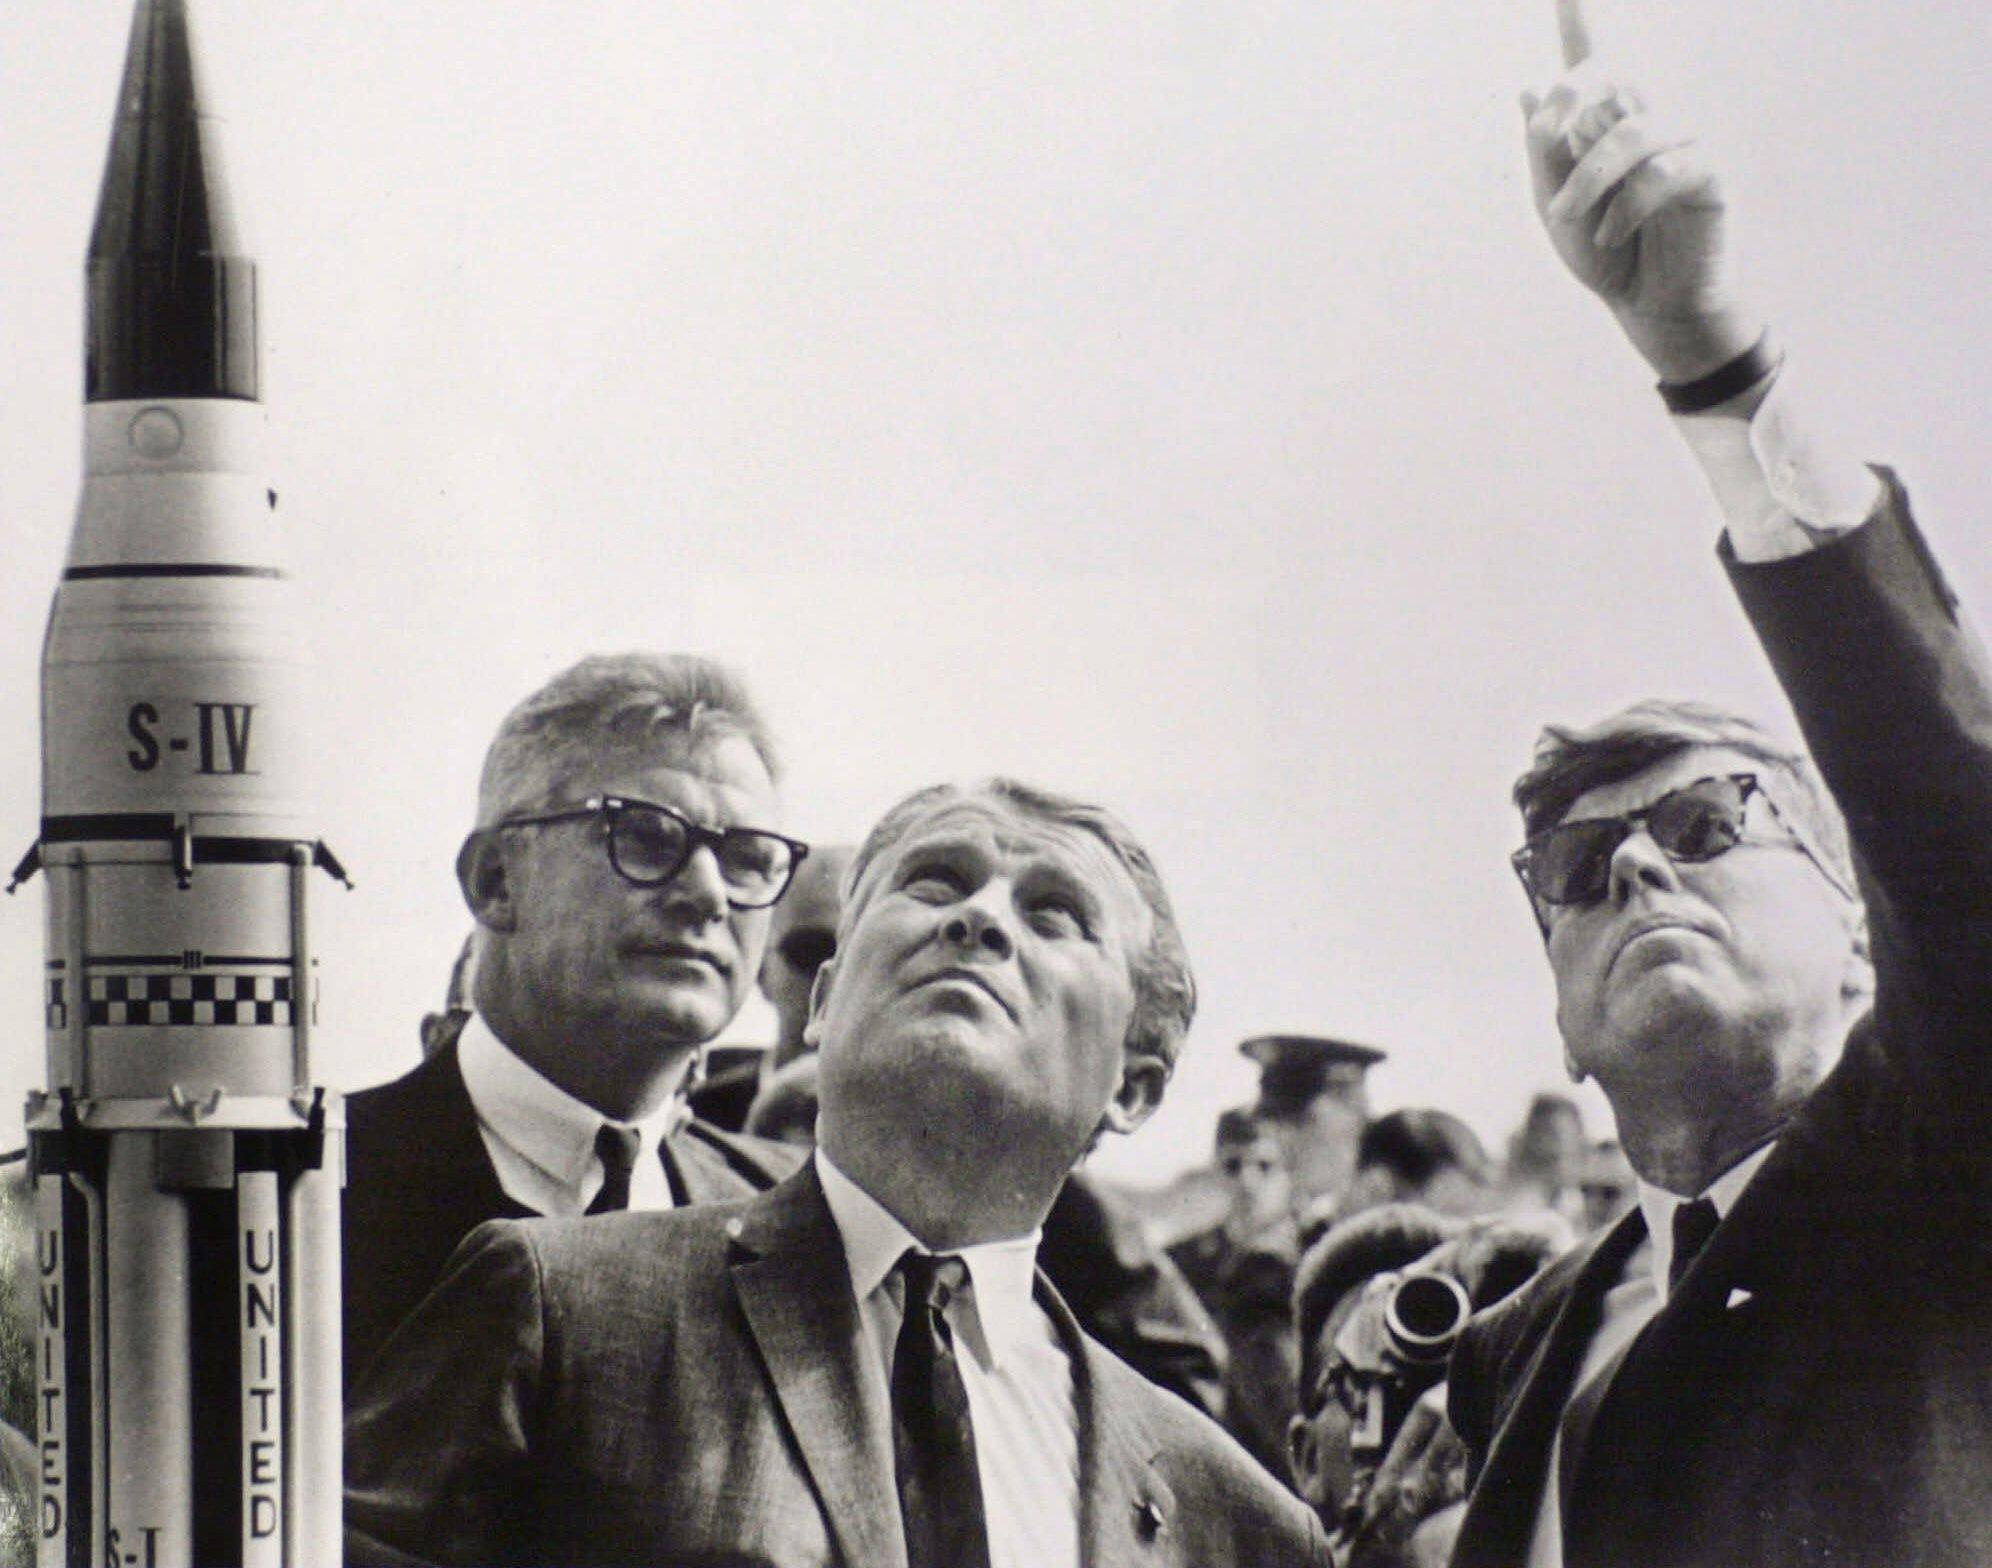 How A Nazi Rocket Scientist Fought For Civil Rights | NPR ...